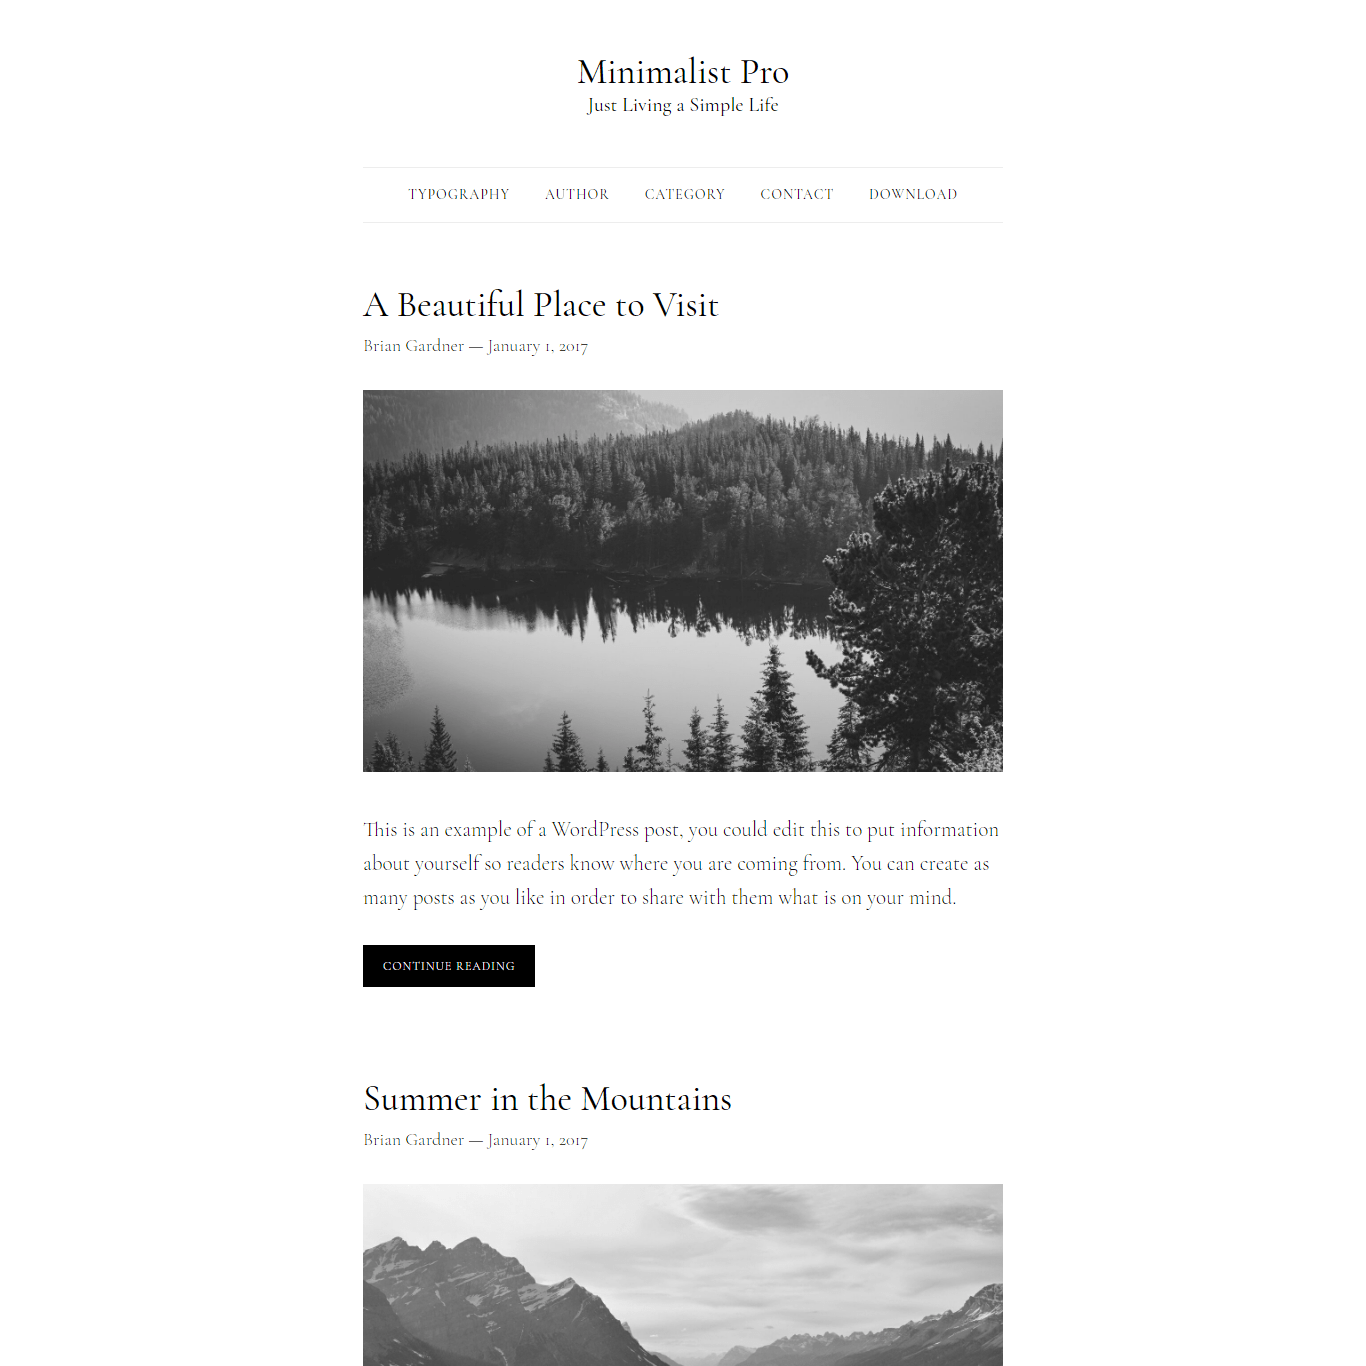 Get a free website with Minimalist Pro by Brian Gardner on Talenthost